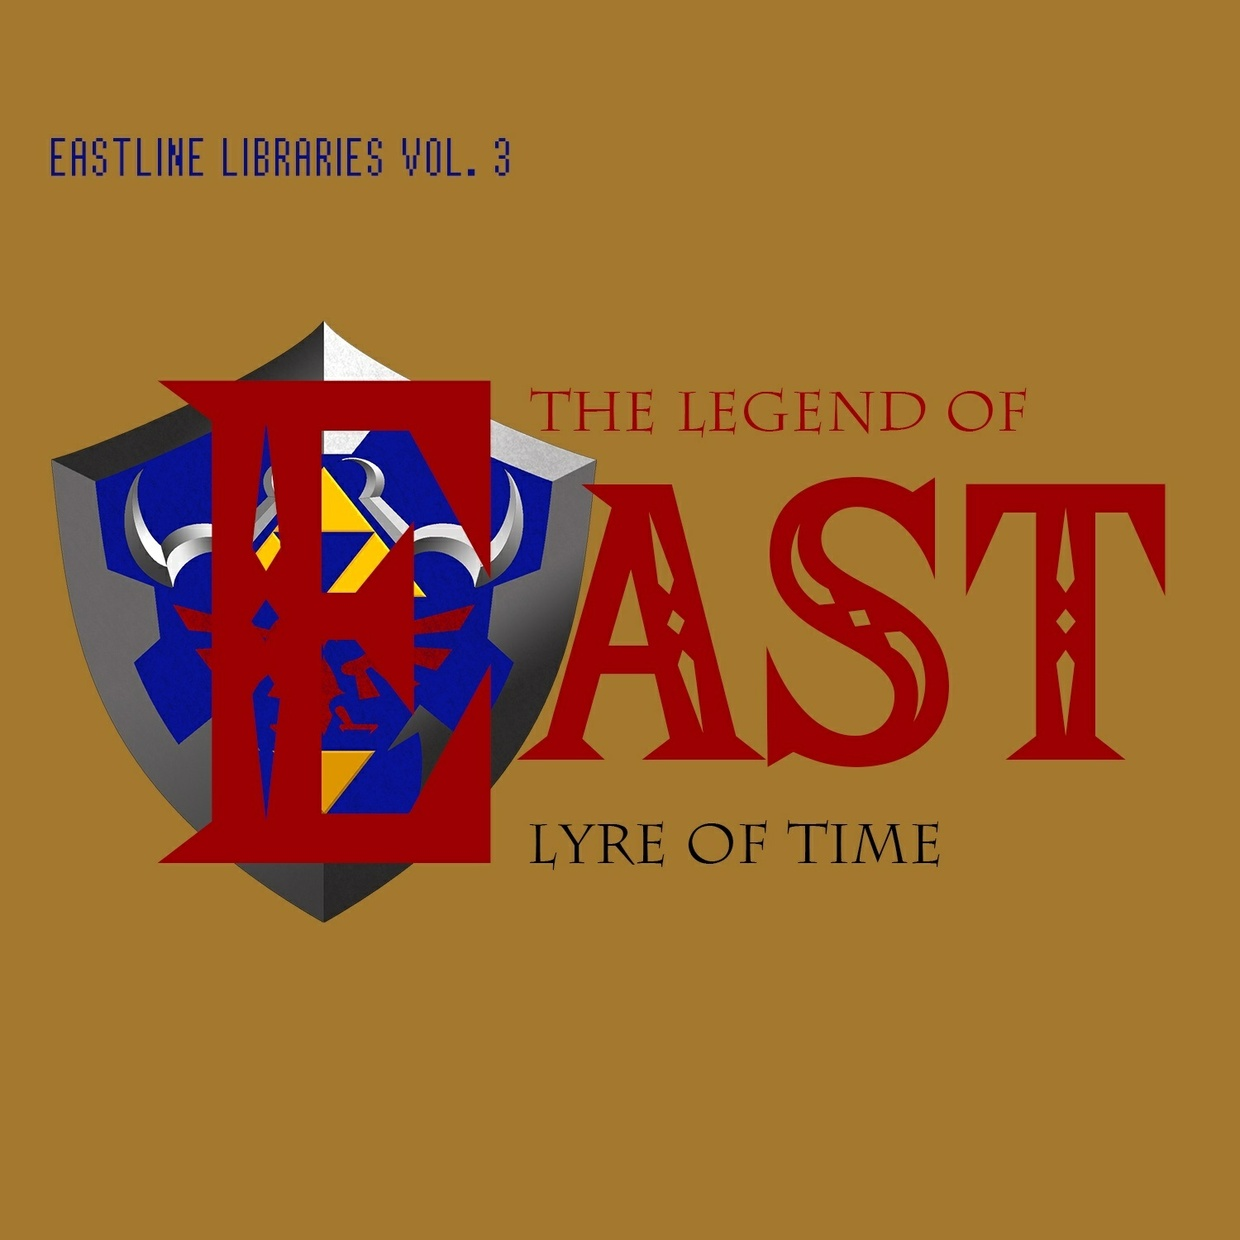 EASTLINE LIBRARIES VOL. 3 - THE LEGEND OF EAST: LYRE OF TIME